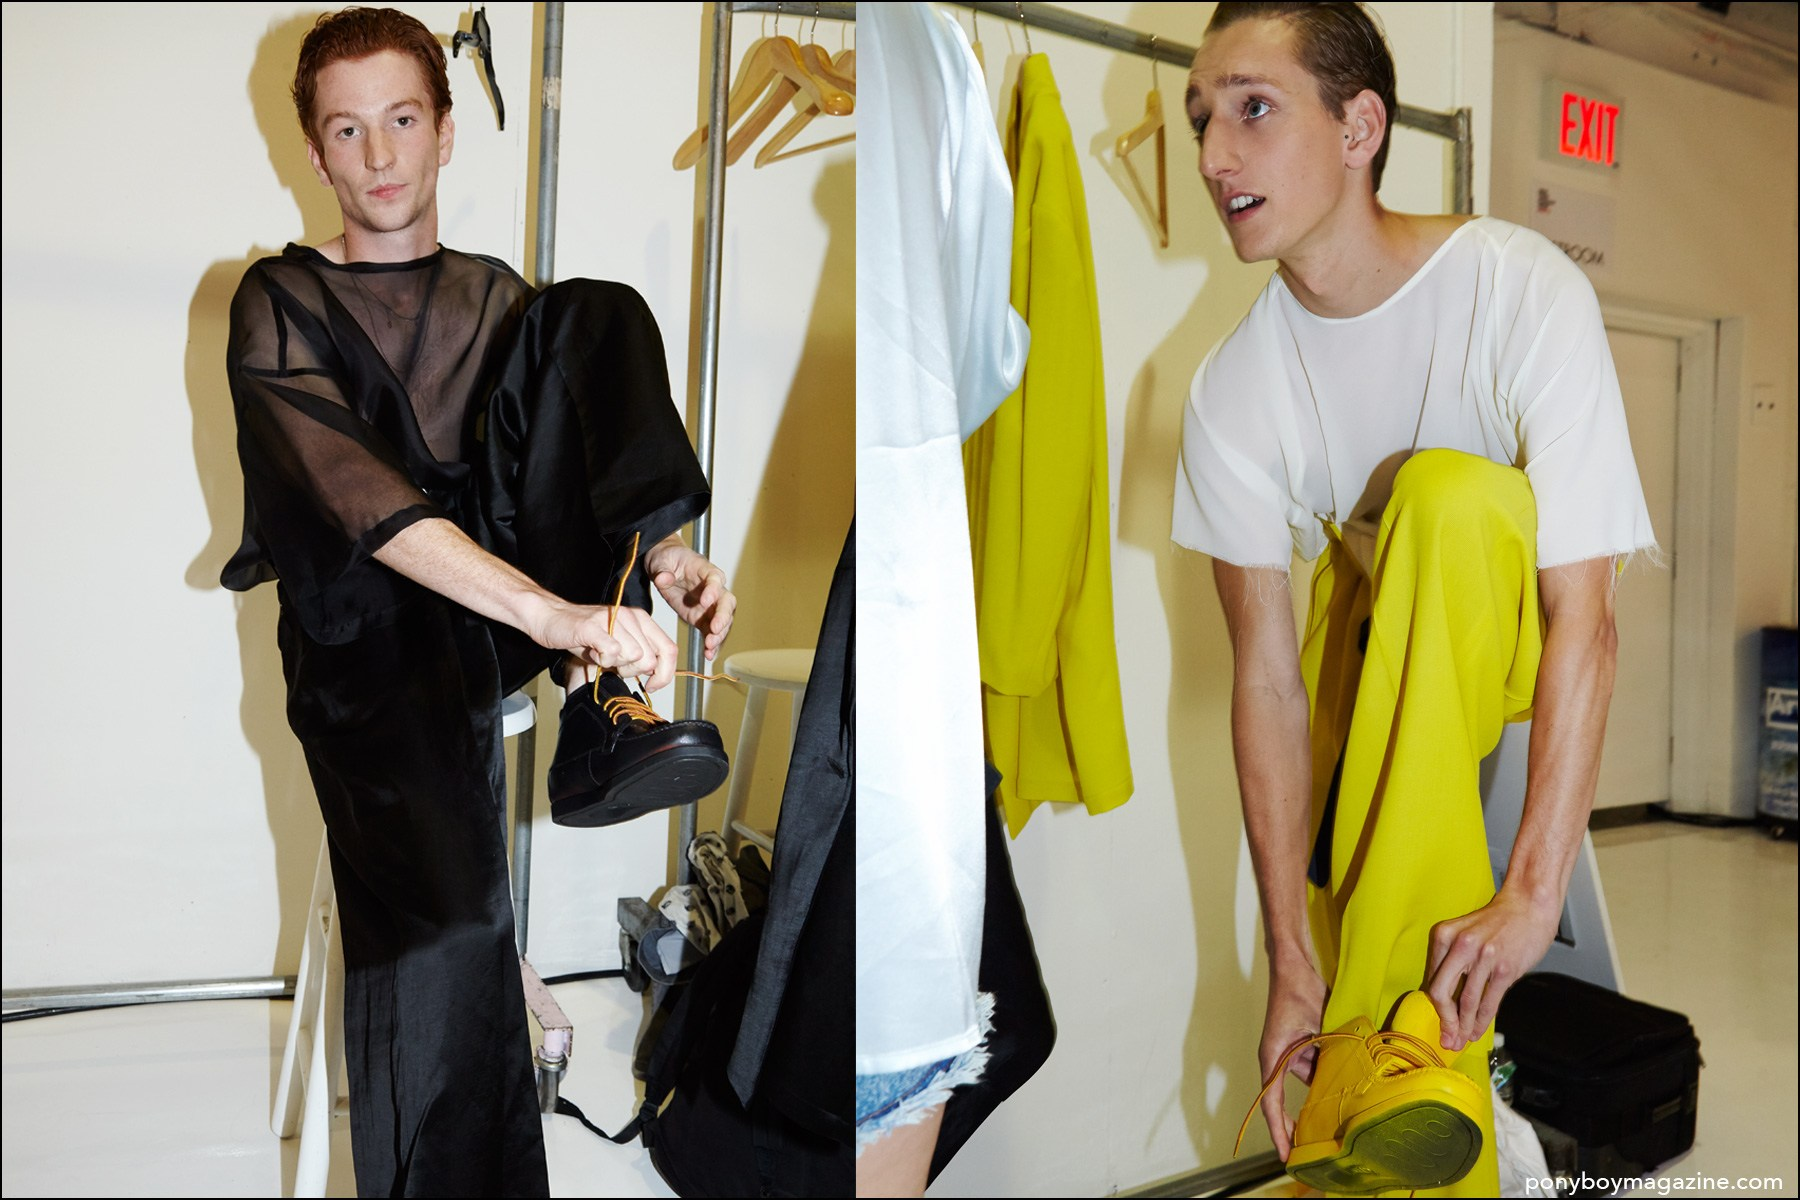 Models Greg France and Tom Gaskin, photographed dressing at the Duckie Brown Spring/Summer 2016 menswear collection. Photography by Alexander Thompson for Ponyboy magazine NY.